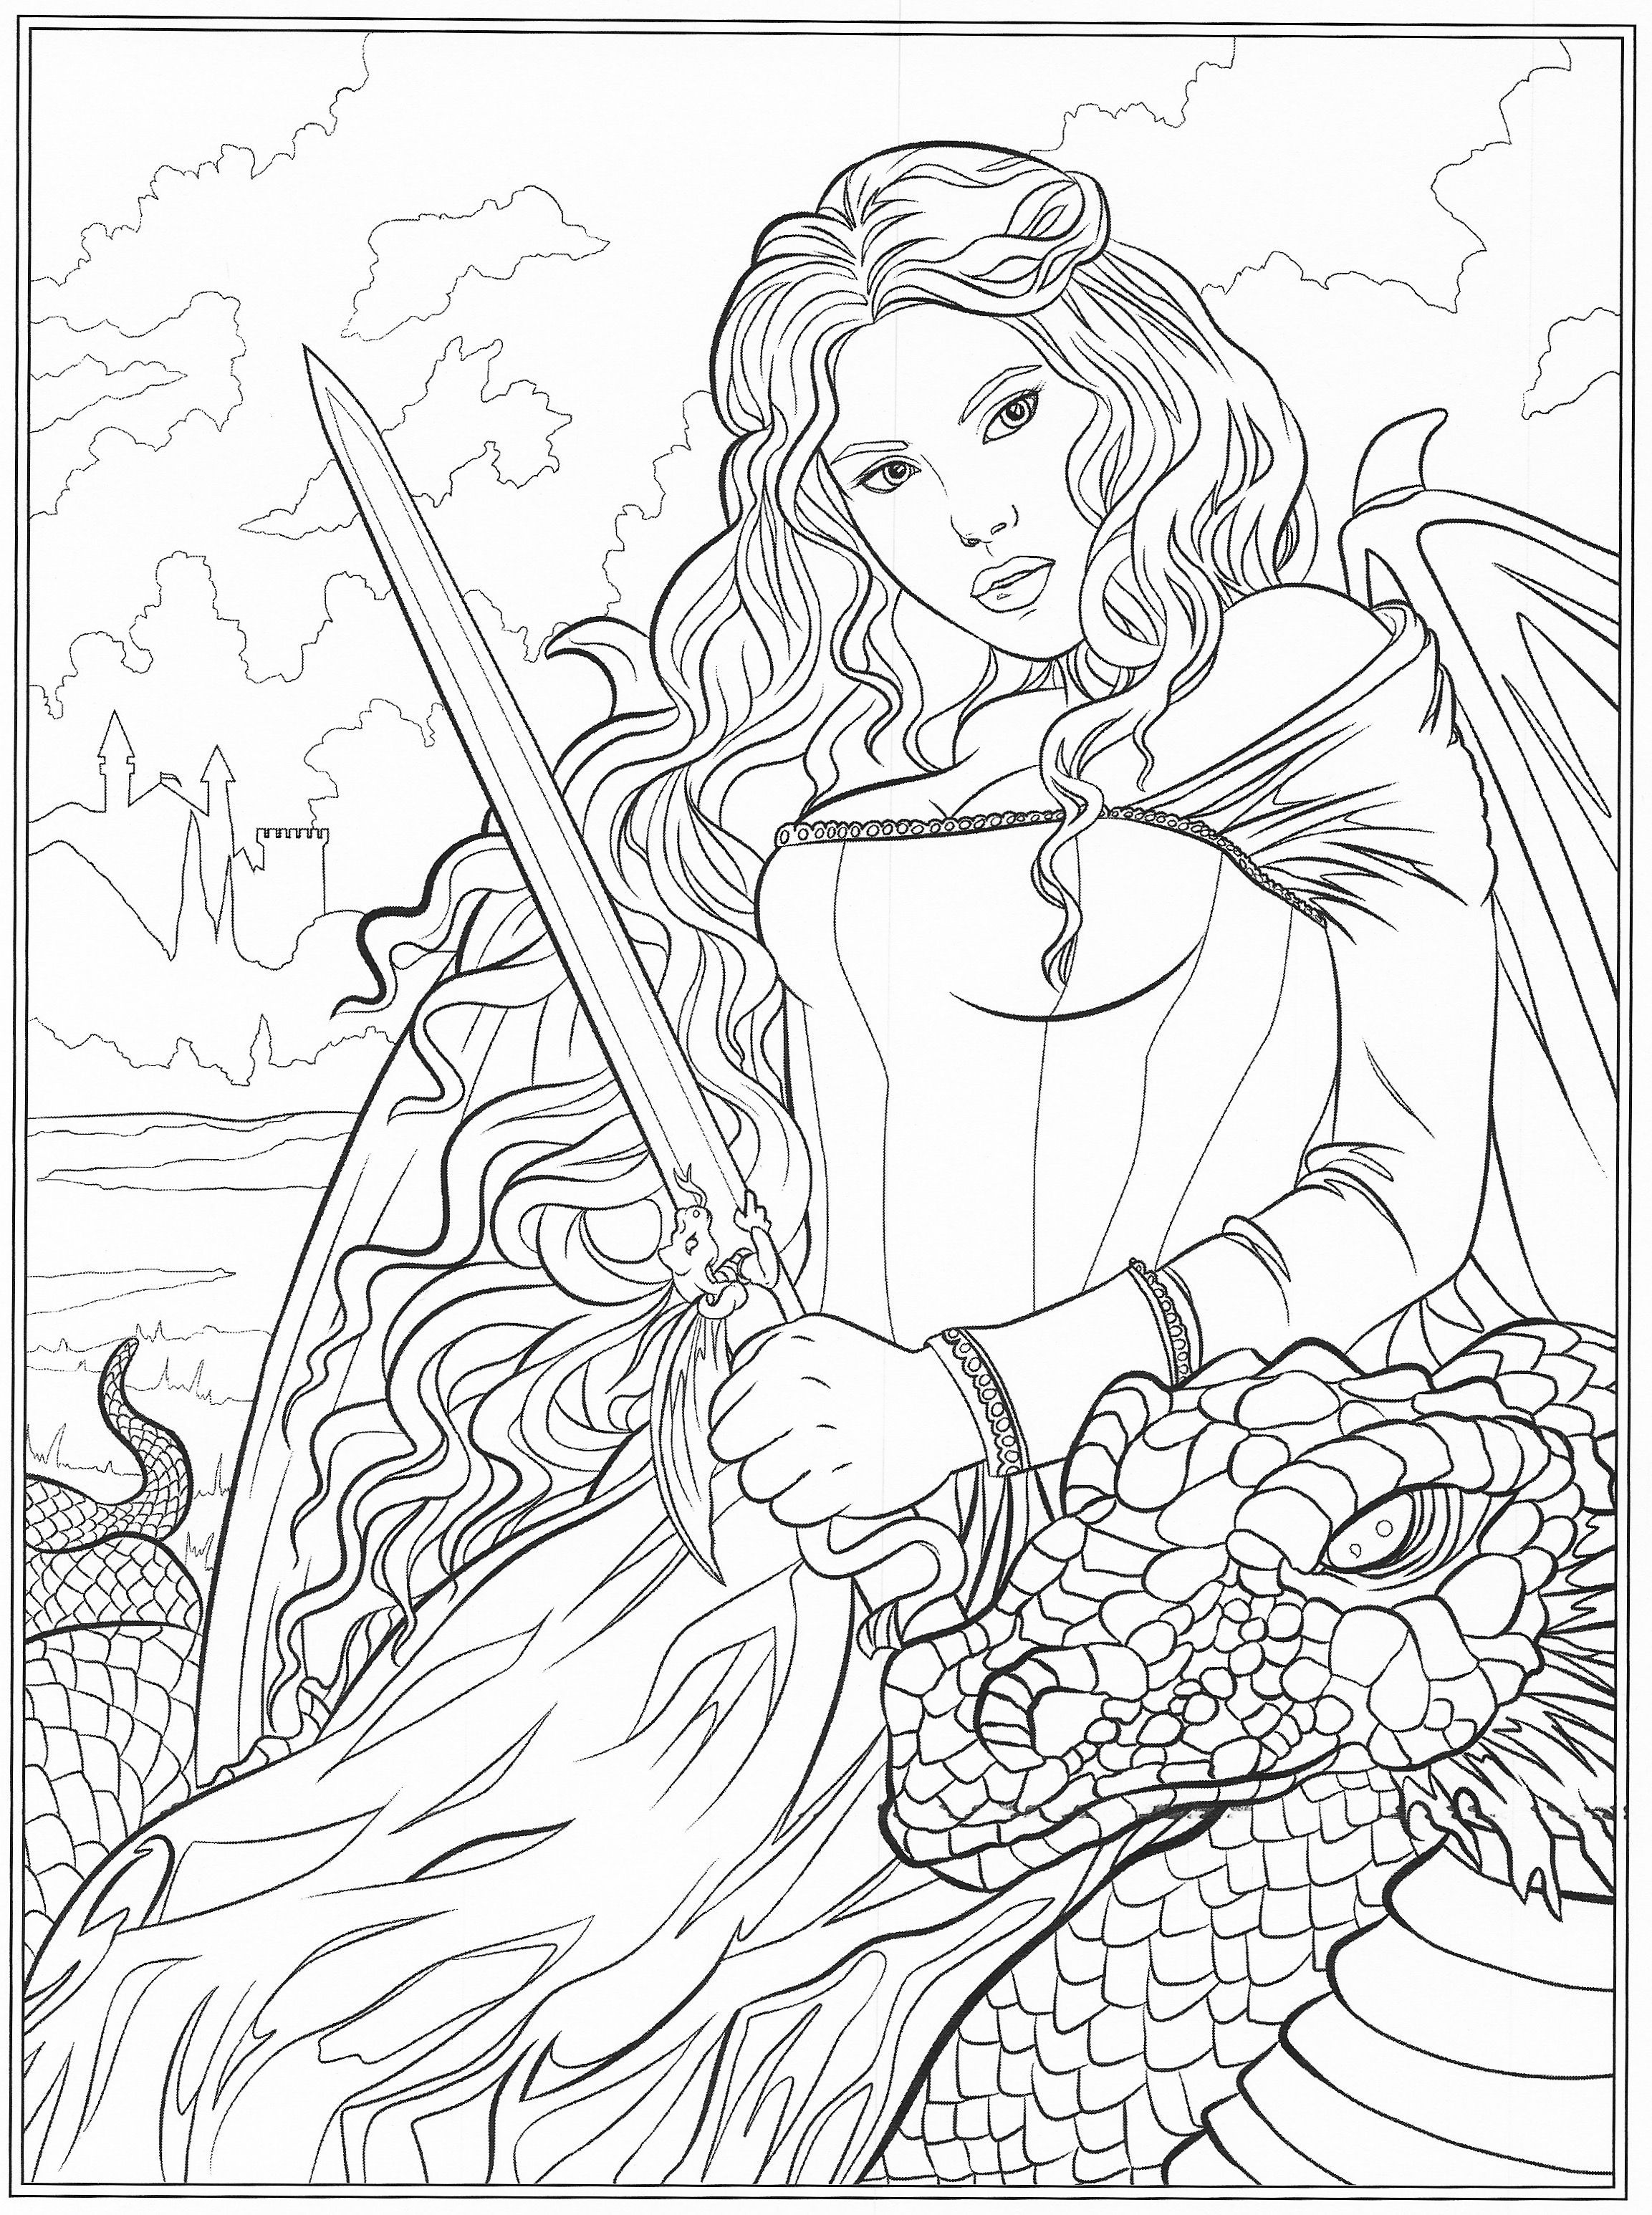 Https Justsayin Online Wp Content Uploads 2018 03 Wiccan Coloring Pages 15 N Selina Fenech S Holiday Book In 2020 Dragon Coloring Page Coloring Books Coloring Pages